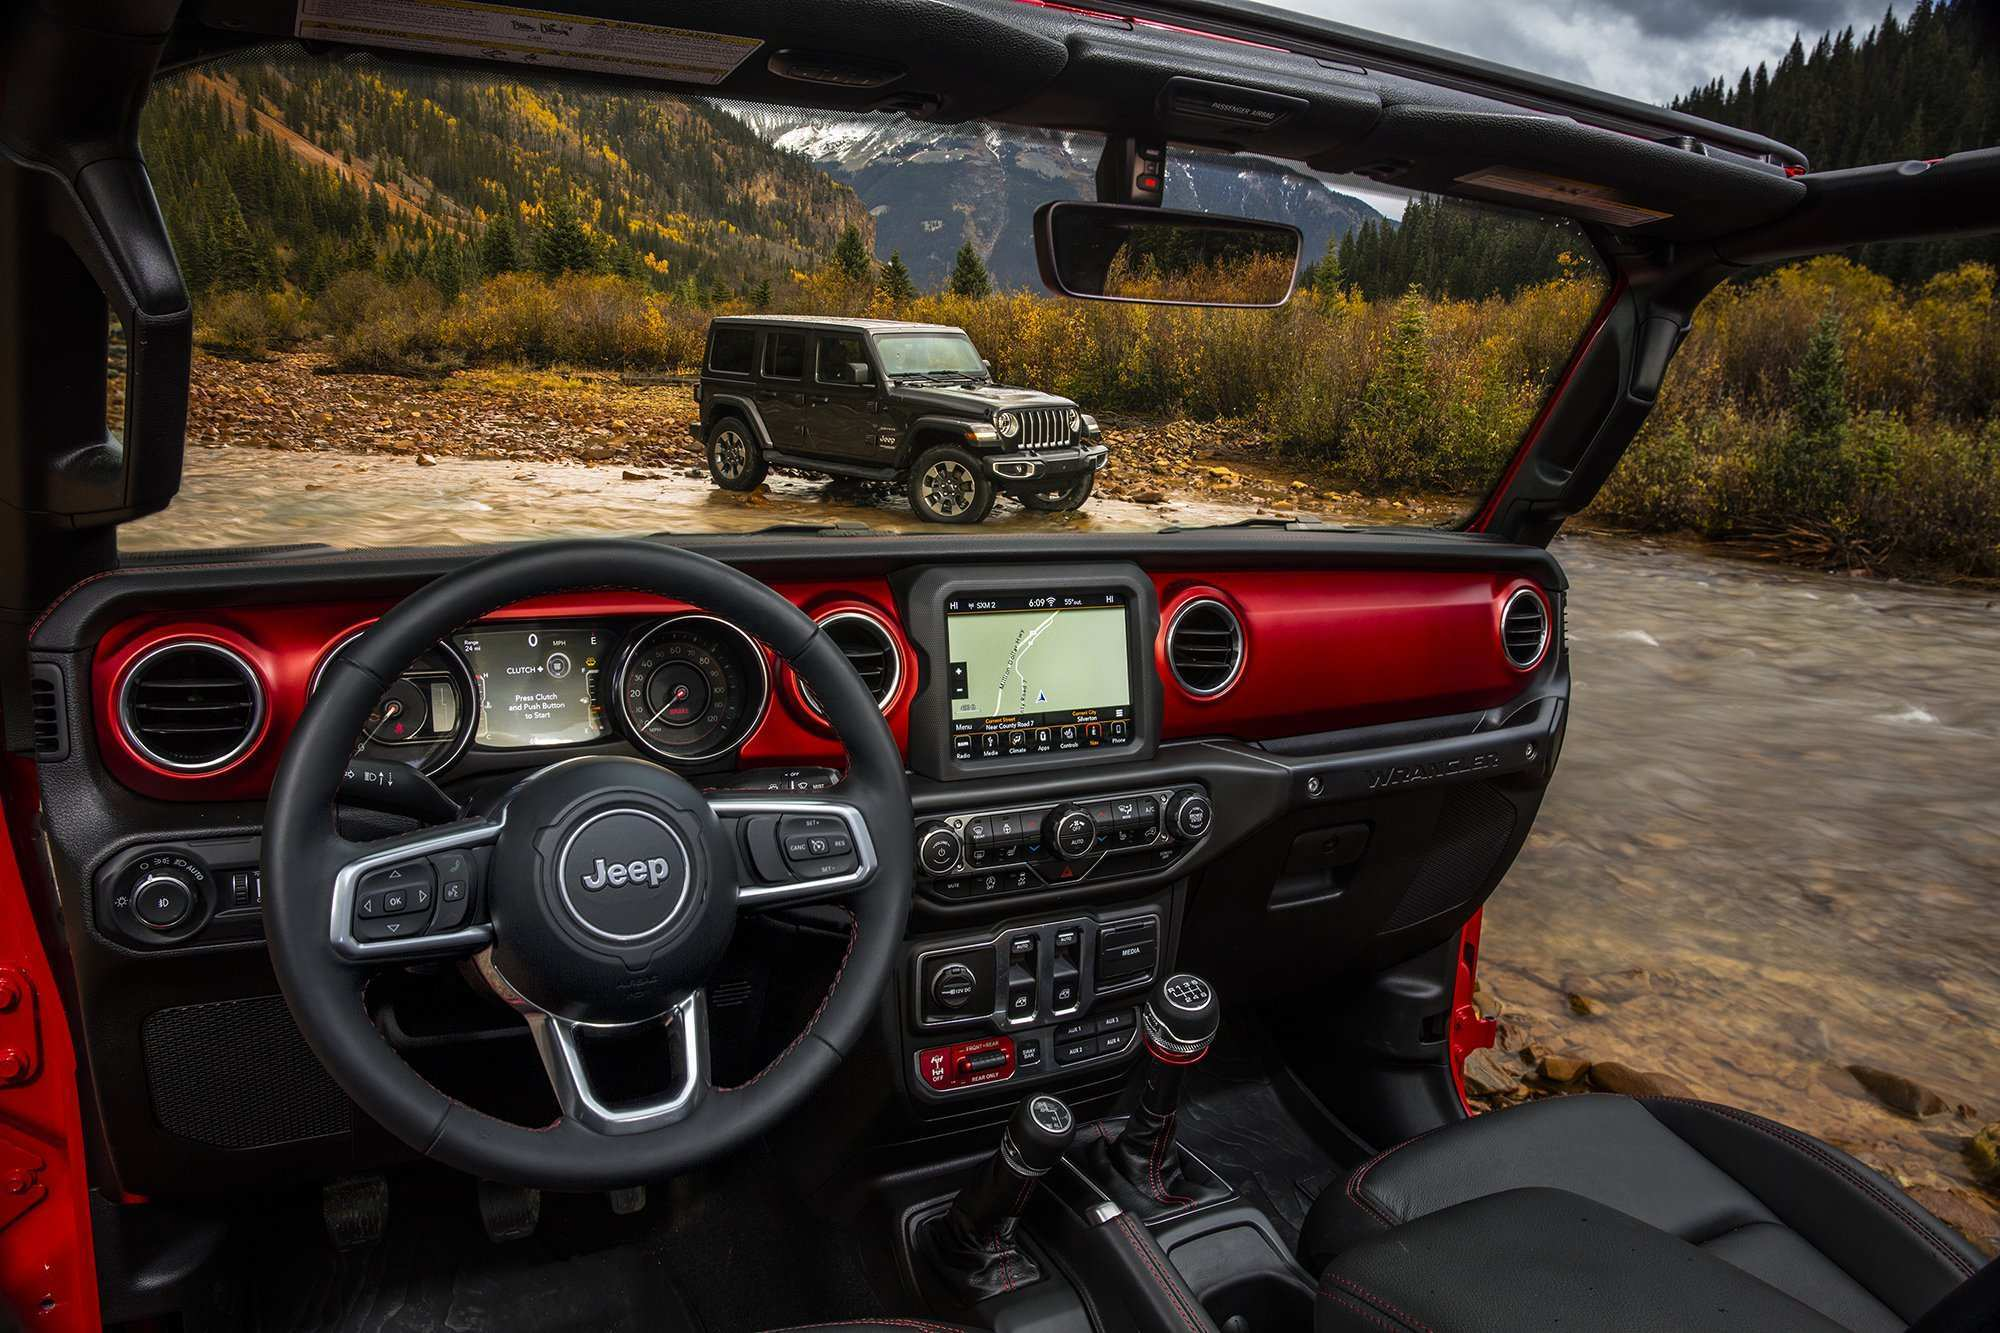 81 Concept of Jeep Turbo Diesel 2019 Interior Review with Jeep Turbo Diesel 2019 Interior